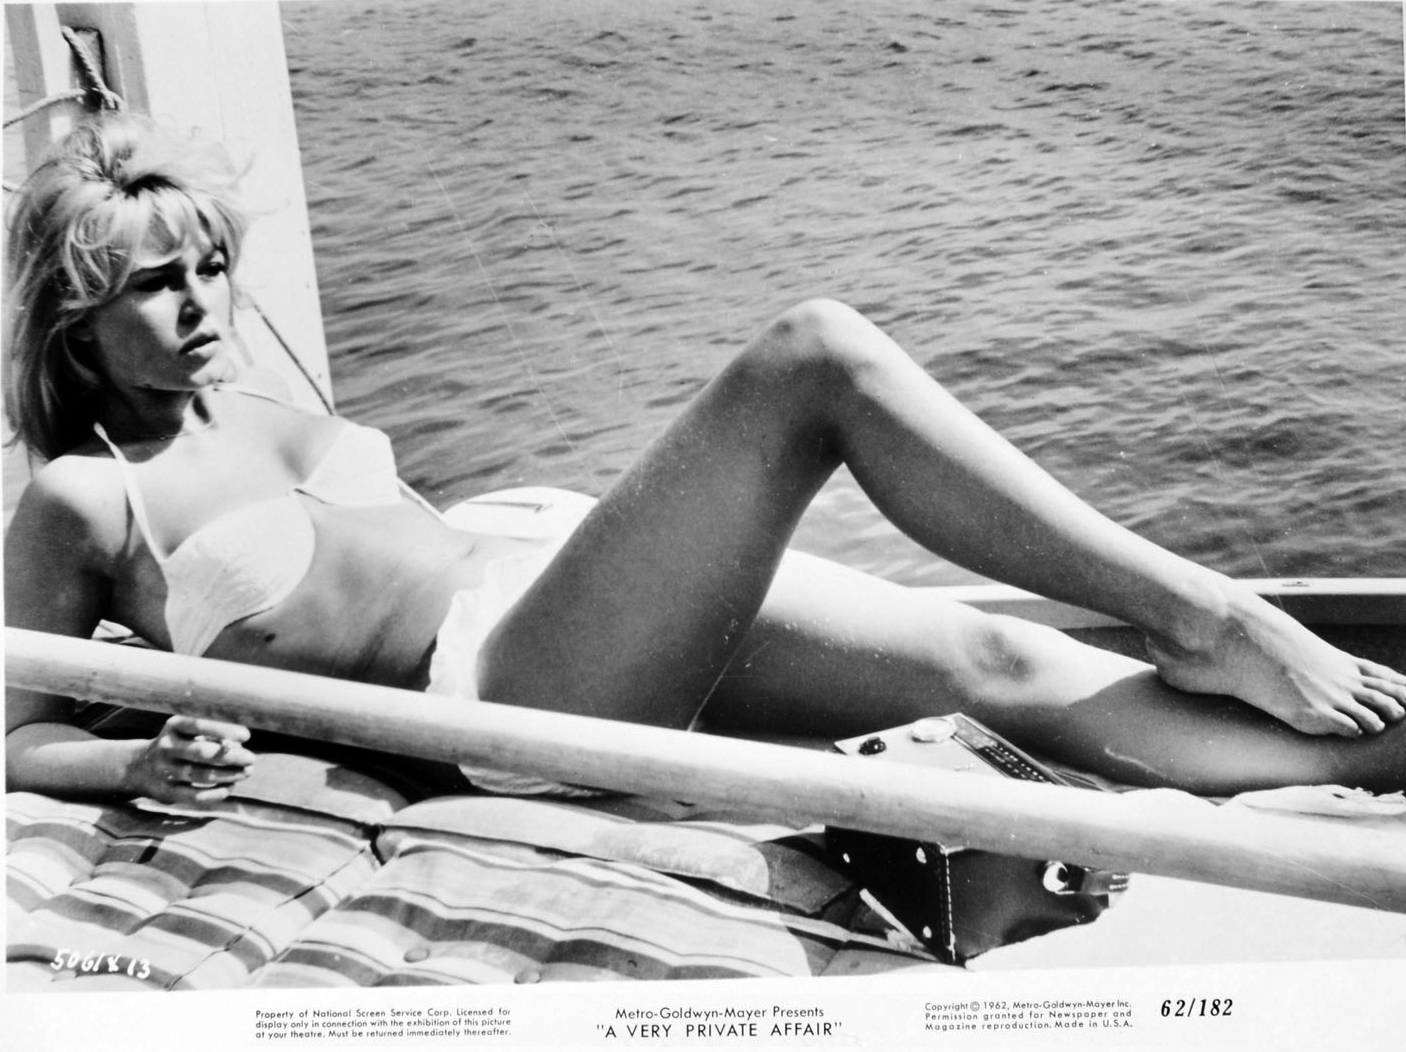 brigitte-bardot-mgm-a-very-private-affair